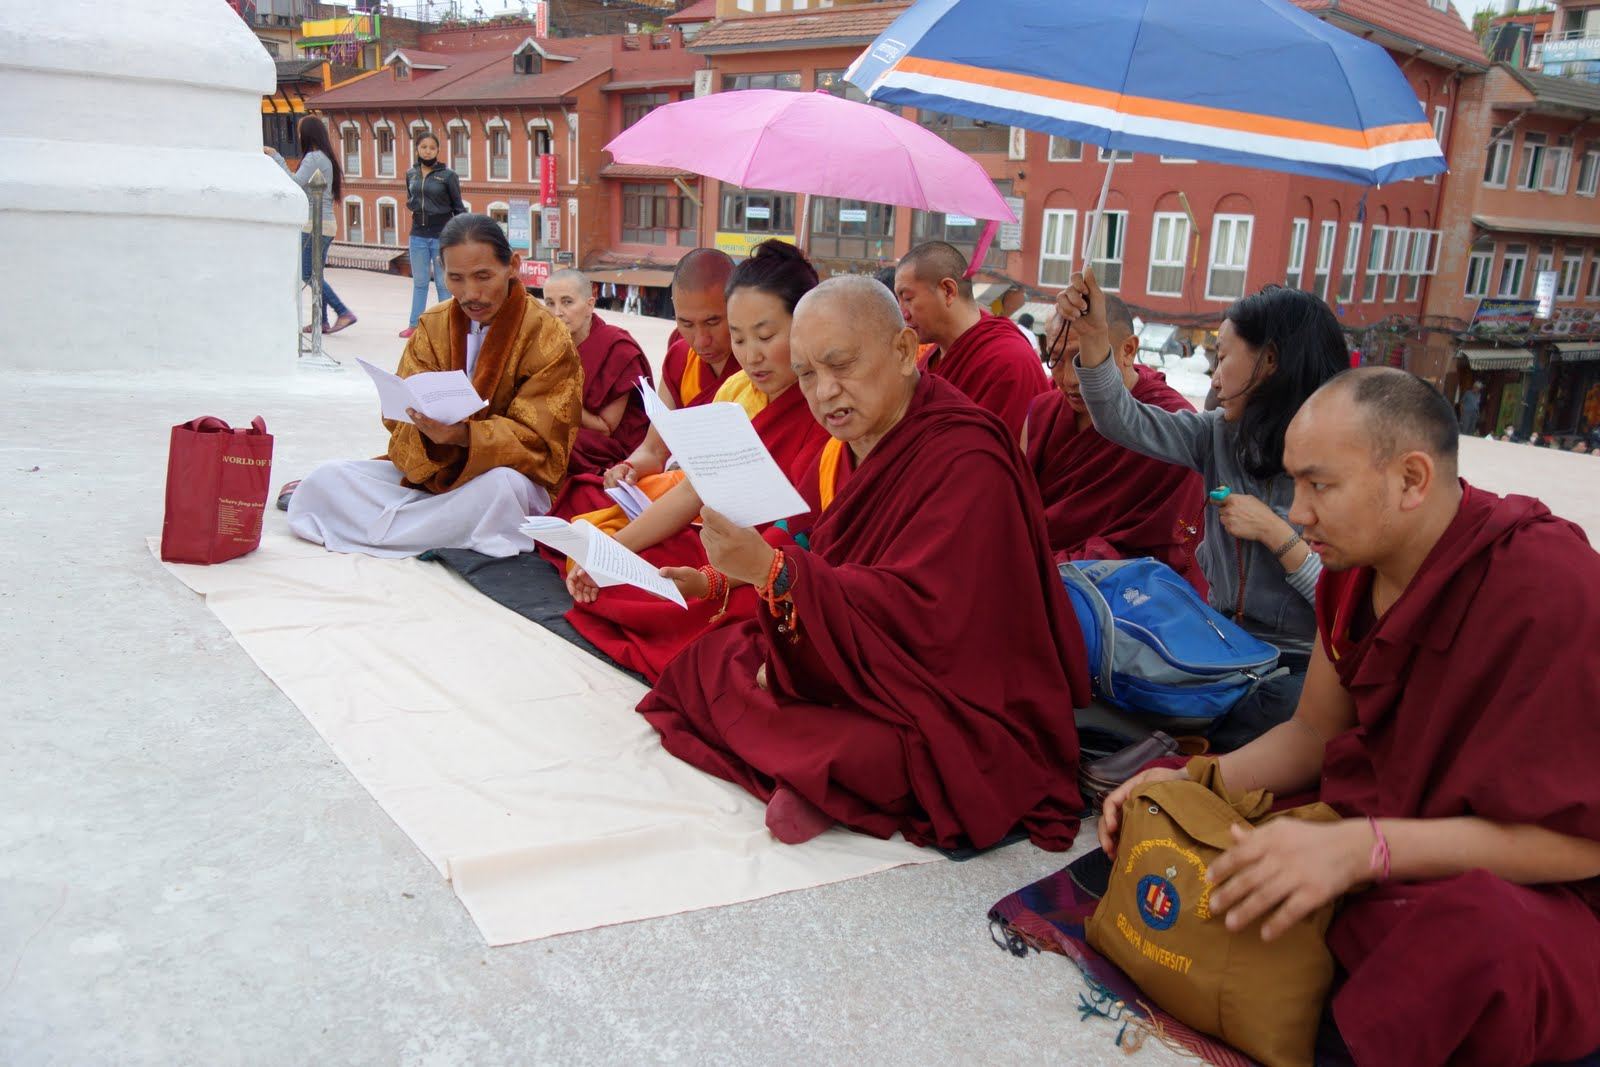 Rinpoche, Khadro-la and others did special prayers for world peace at Bouddha Stupa today. Rinpoche put together the collection of prayers to stop wars, prevent natural disasters, environmental disasters, etc. And to reduce self cherishing. Photo by Ven. Roger Kunsang.